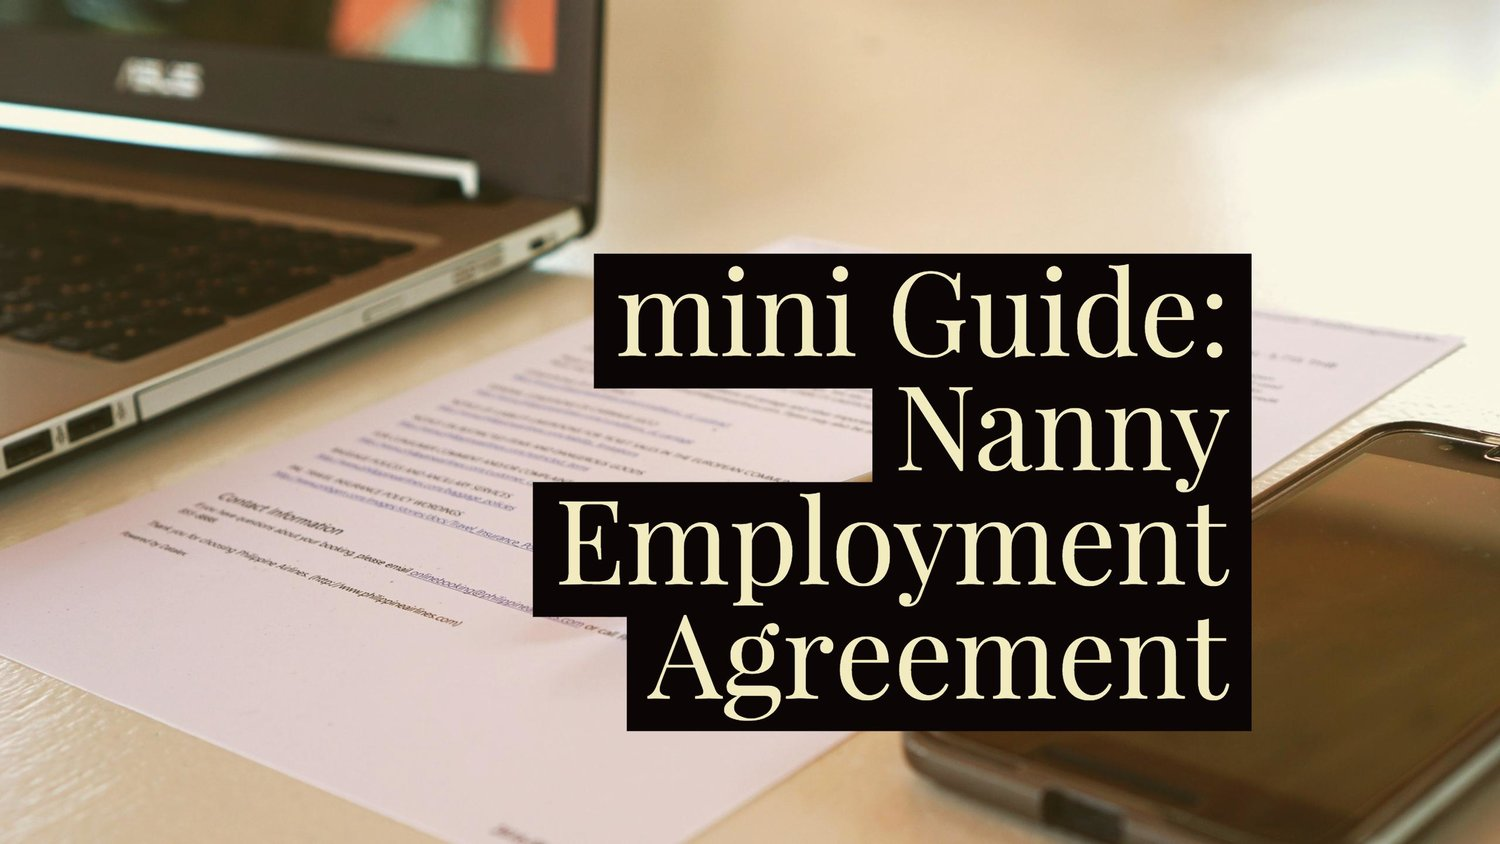 Read our guide to navigating nanny employment obligations here.